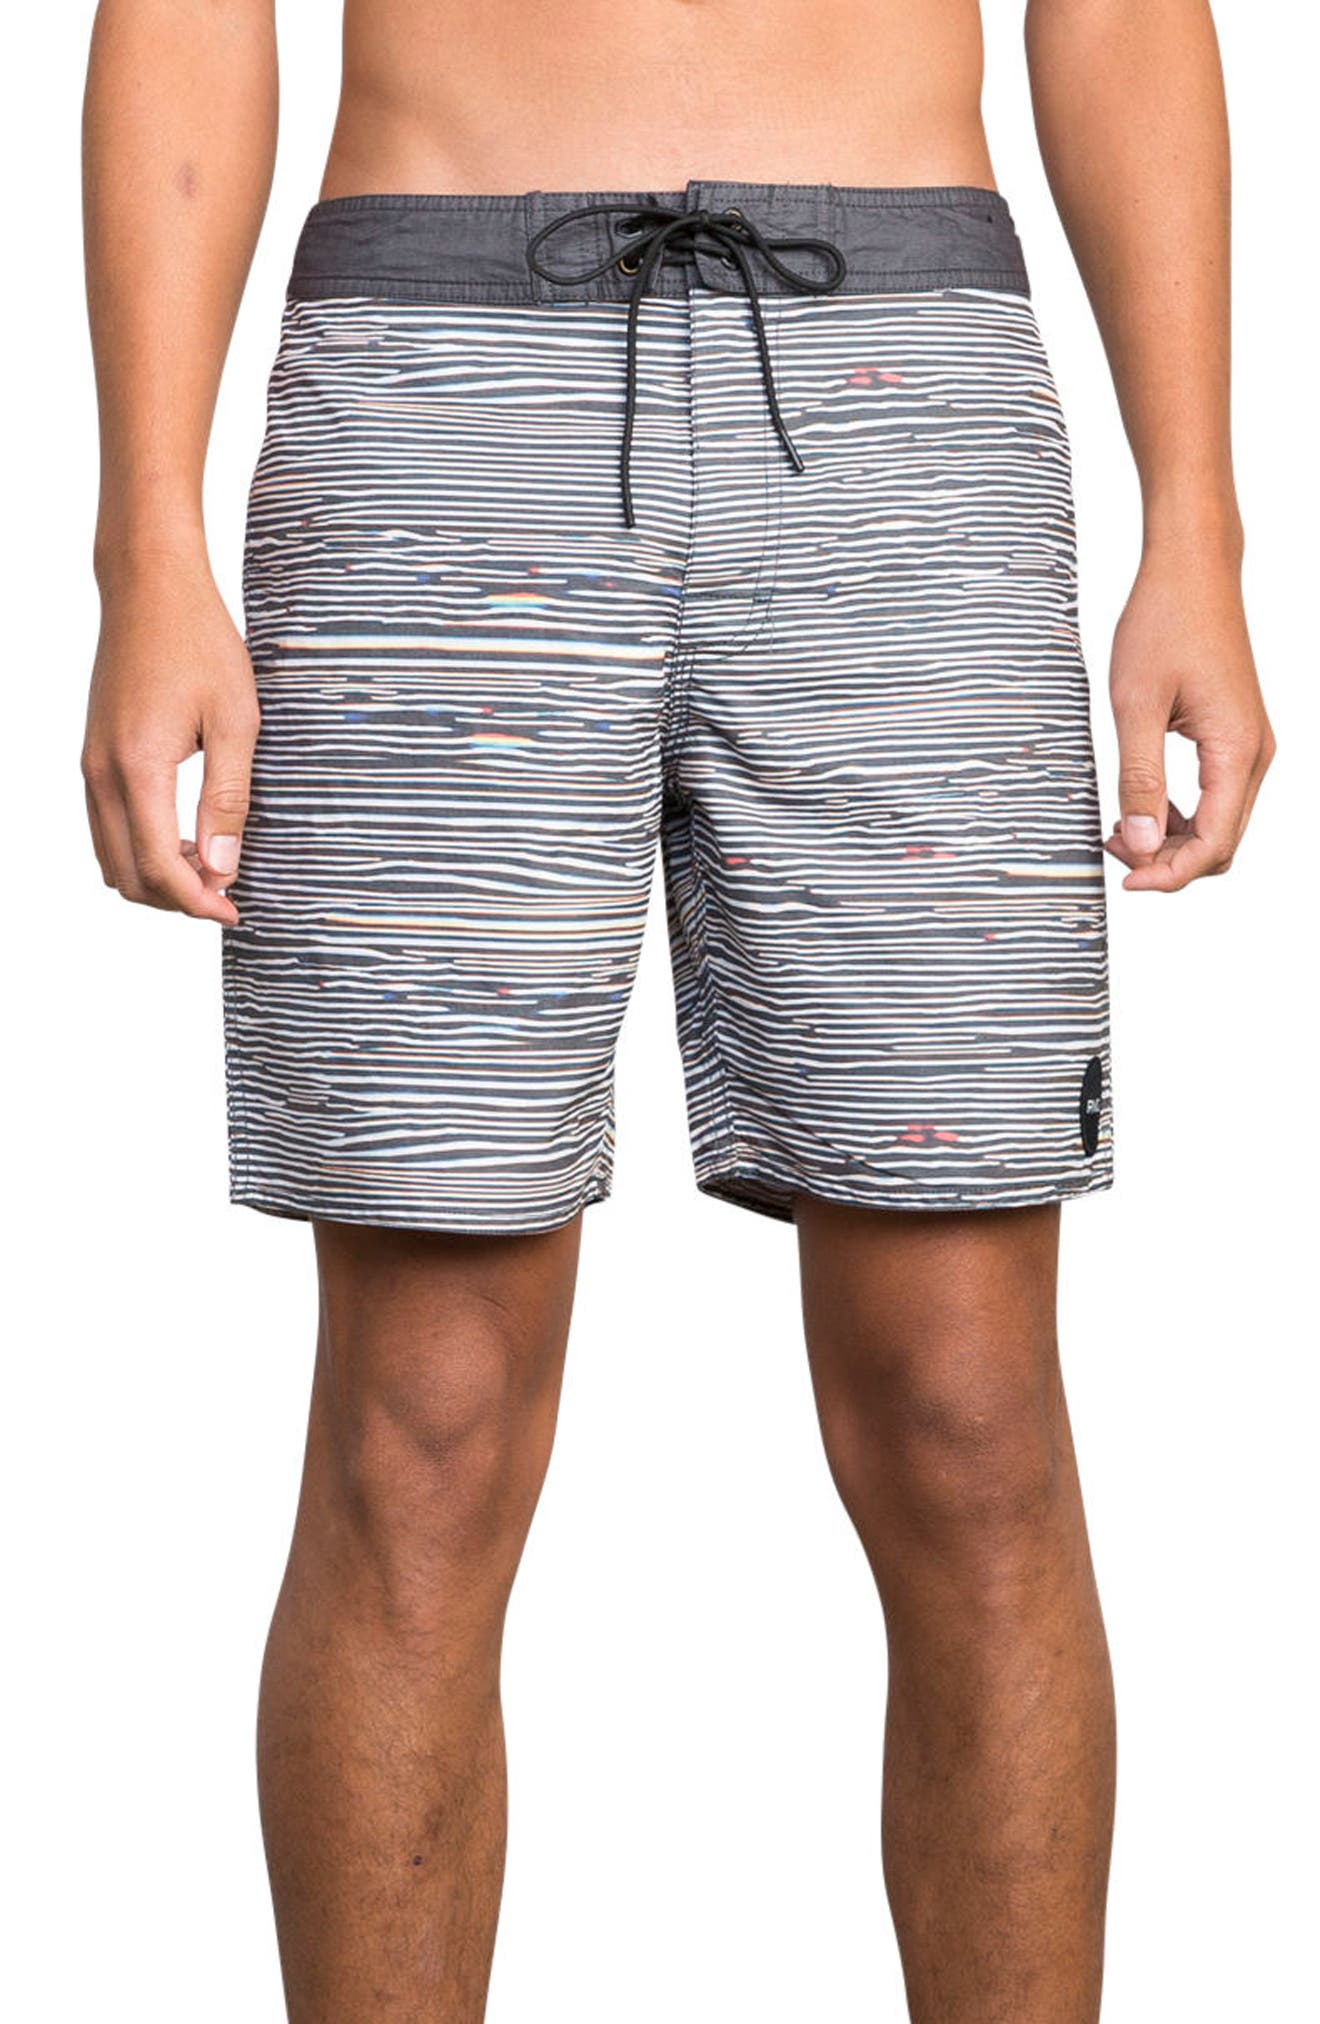 Flinch Board Shorts,                         Main,                         color, 020